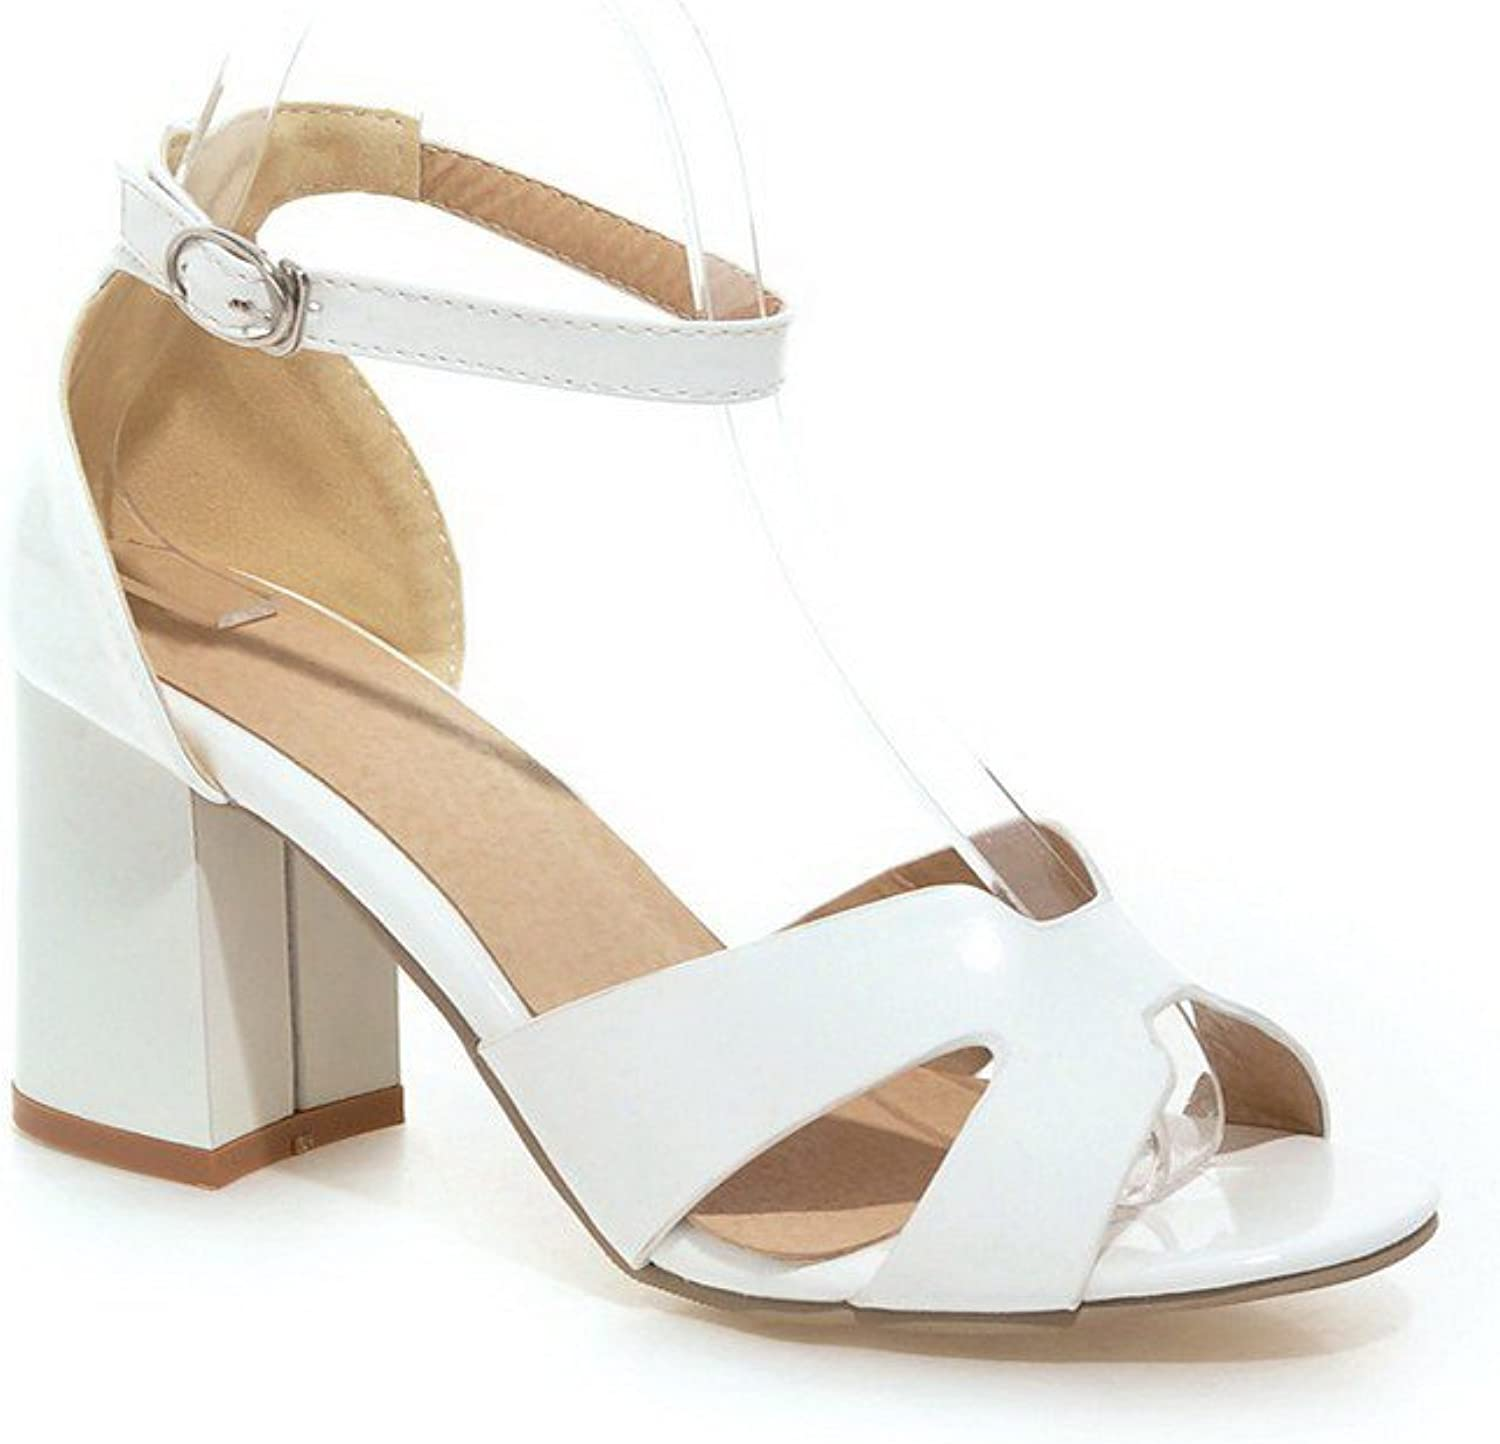 AmoonyFashion Women's High-Heels Patent Leather Solid Buckle Open Toe Heeled-Sandals